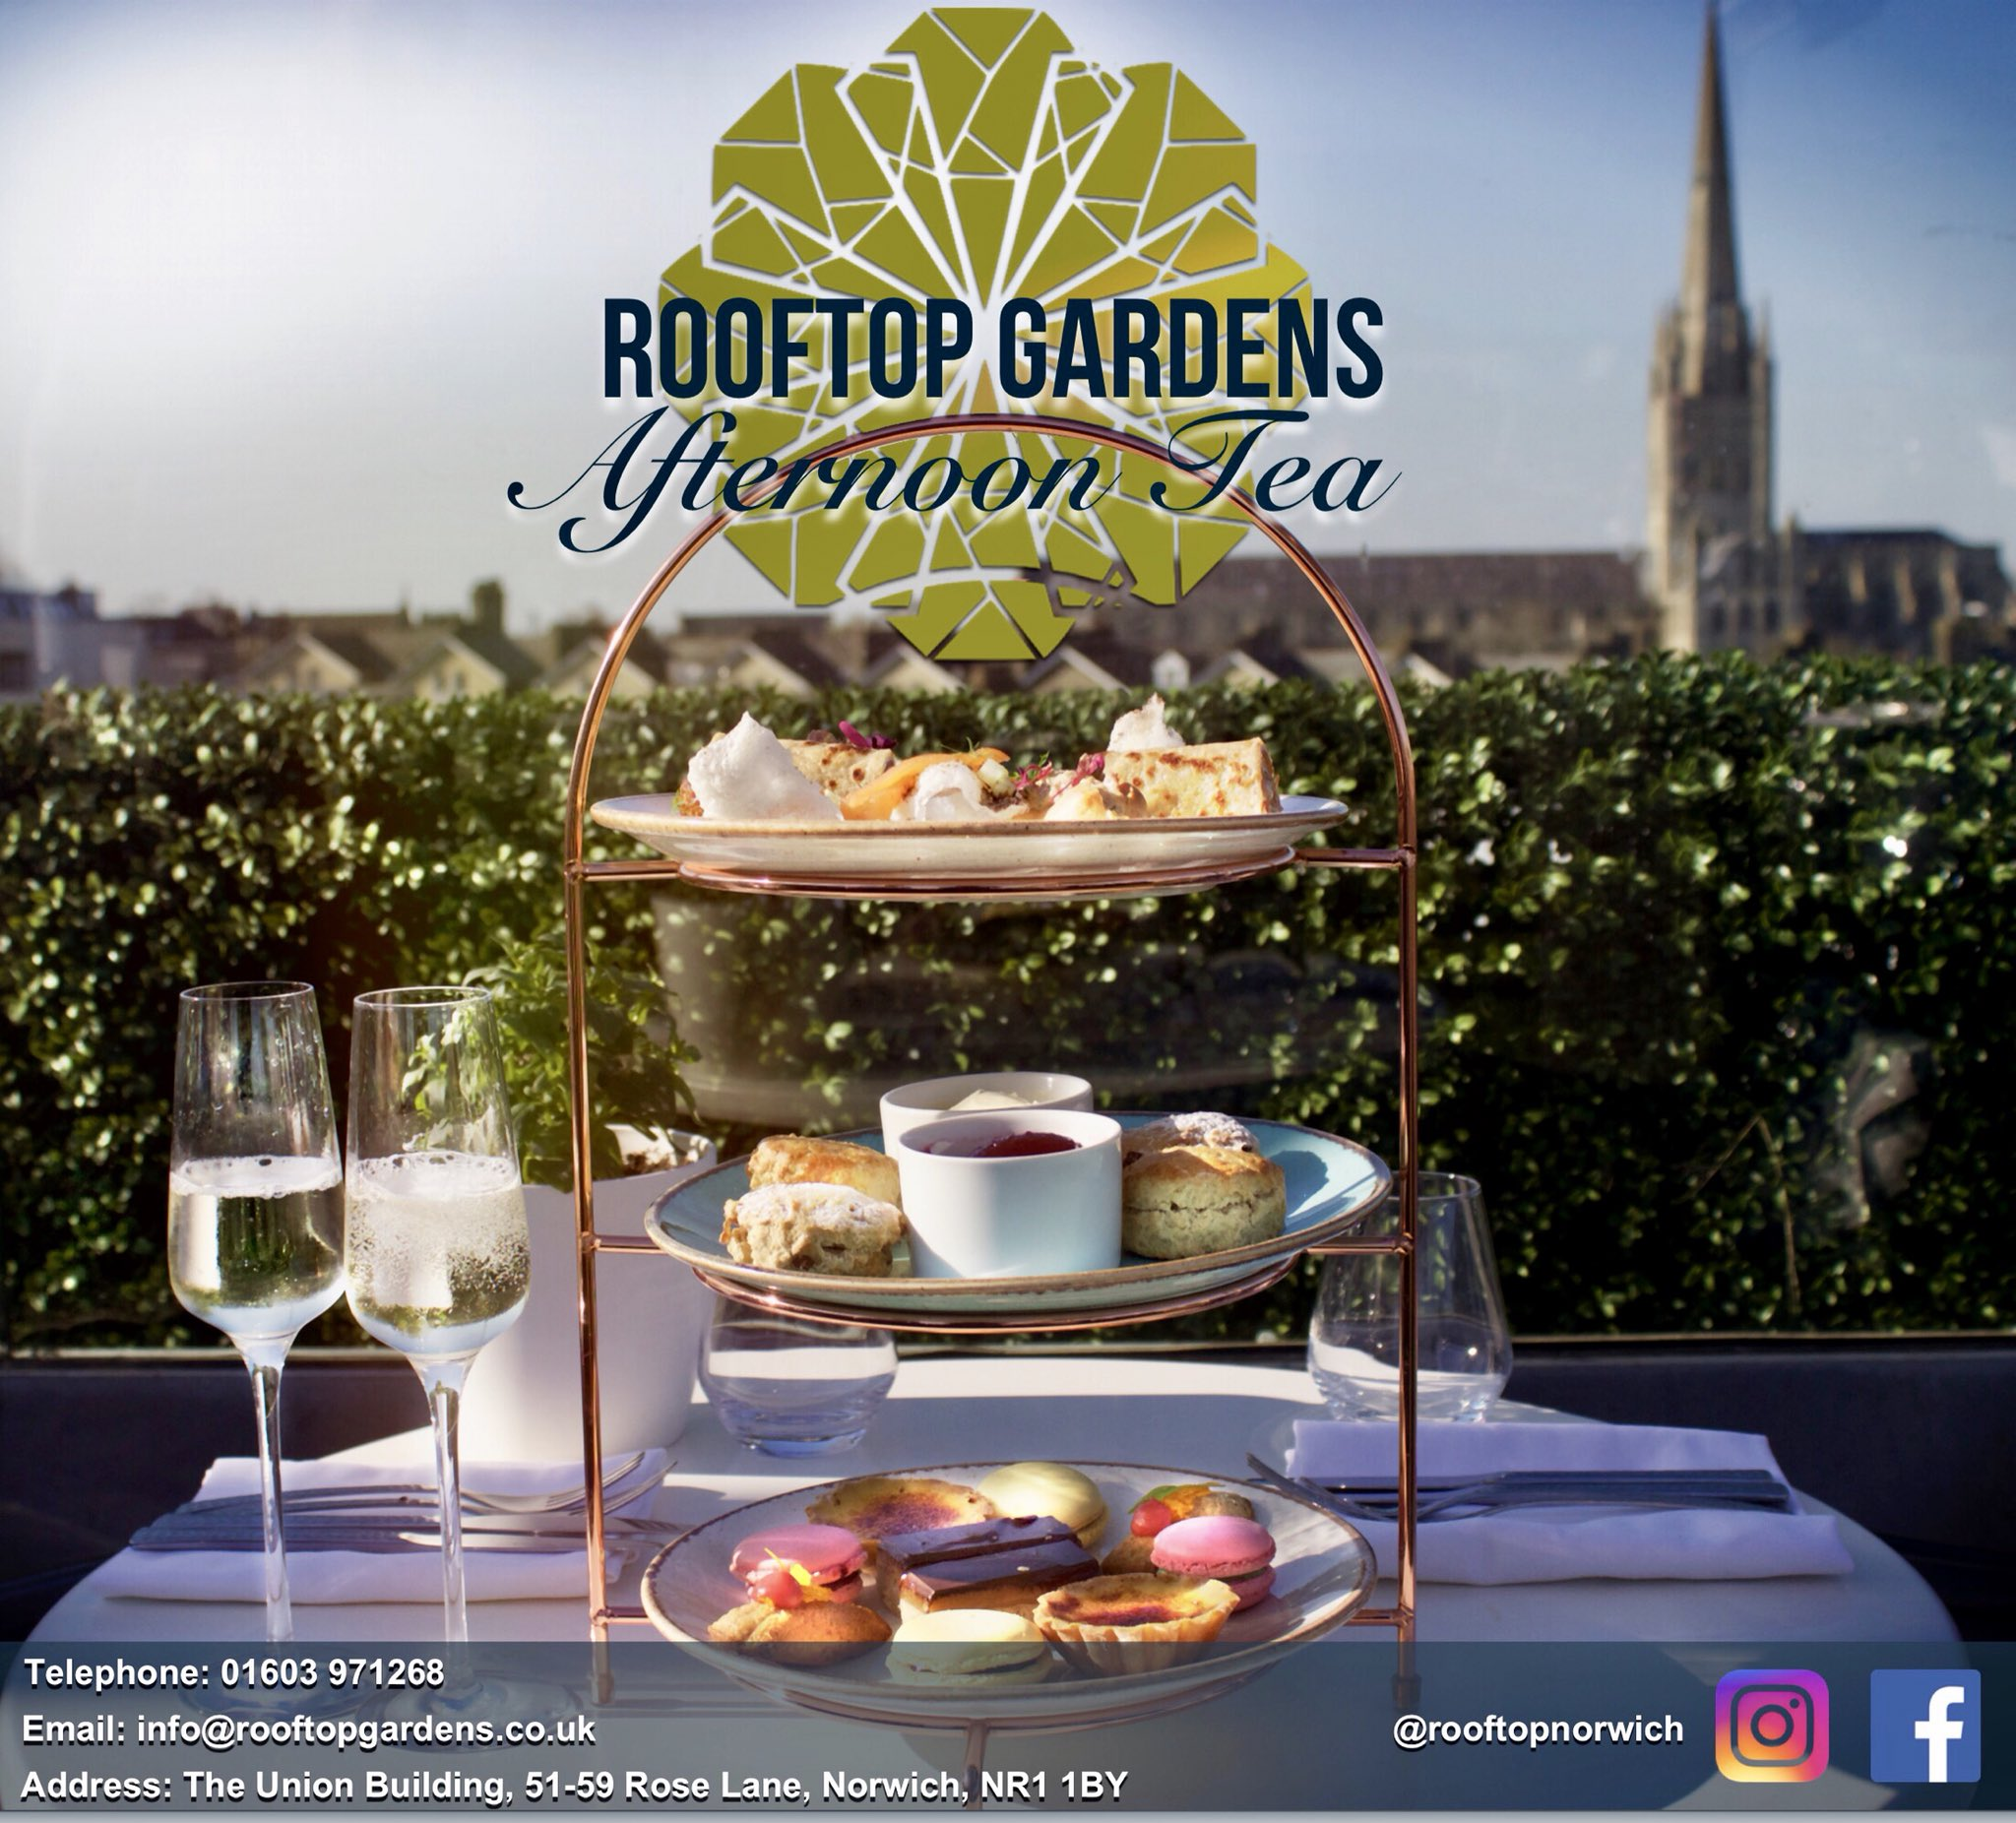 Rooftop Gardens On Twitter Afternoon Tea We Will Be Launching Our Afternoon Tea Next Week To Celebrate We Have A Competition On Our Fb Head Over To Take Part To